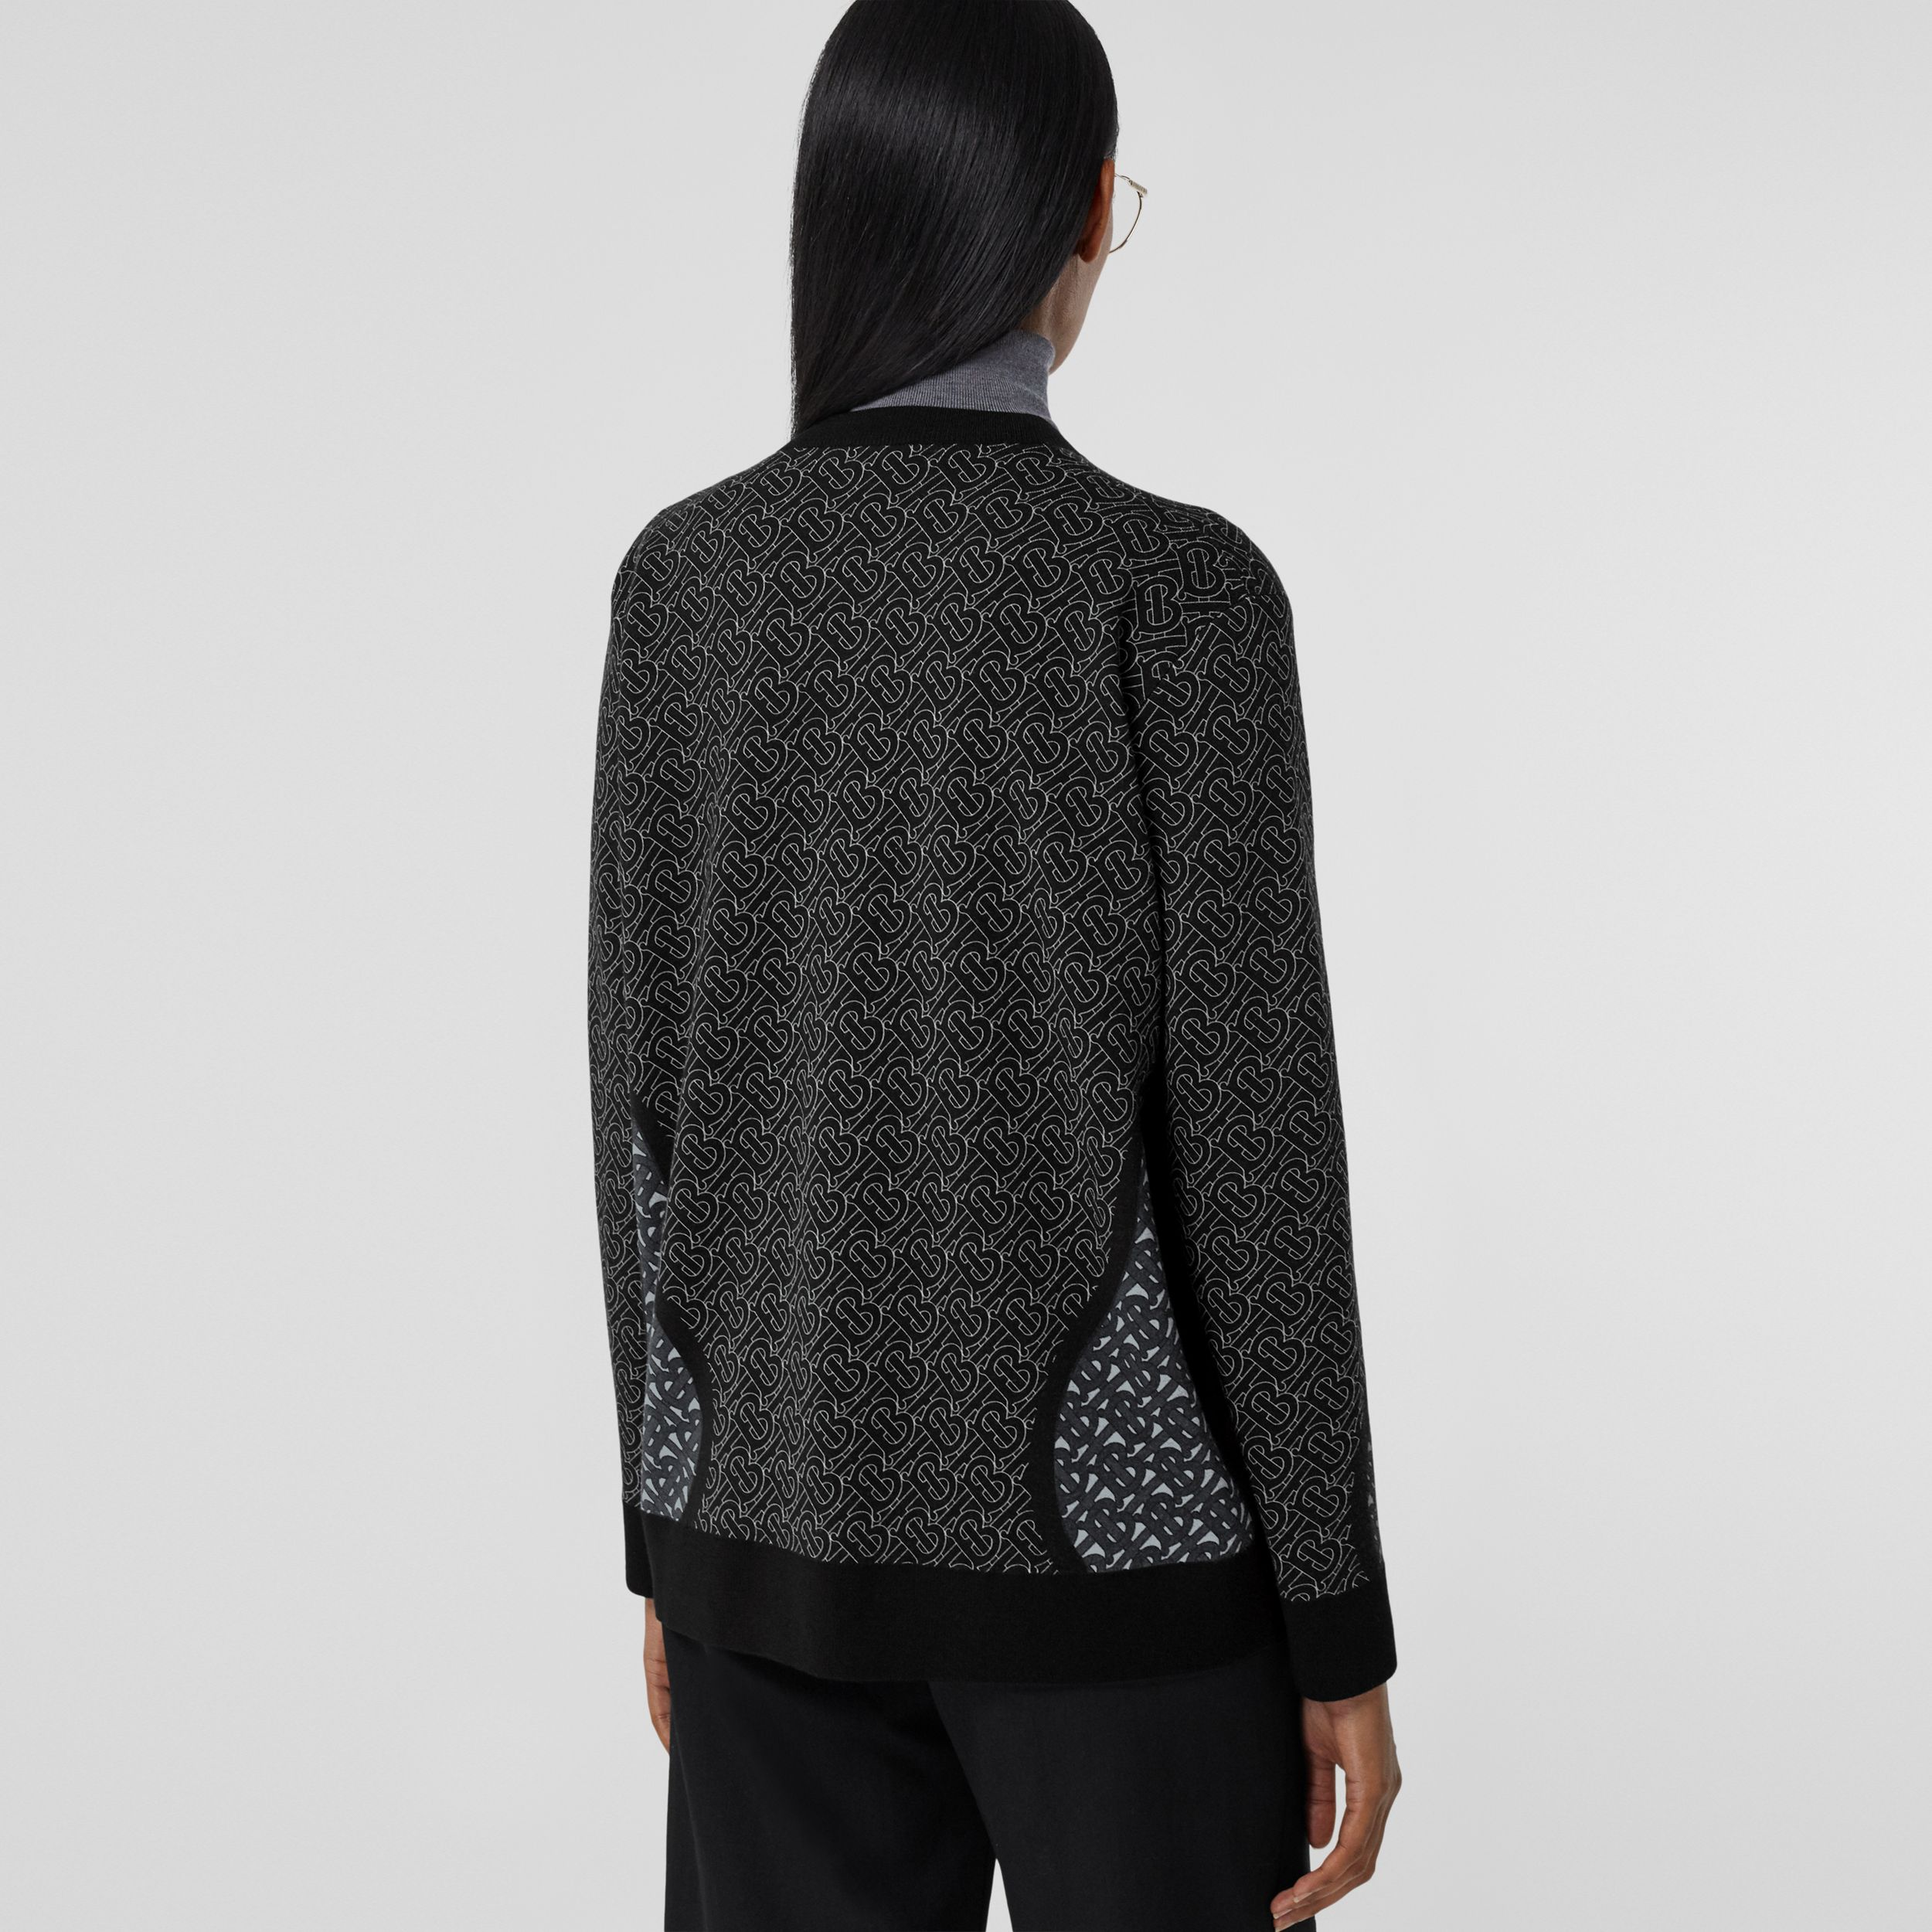 Unicorn Print Technical Merino Wool Cardigan in Black - Women | Burberry - 3